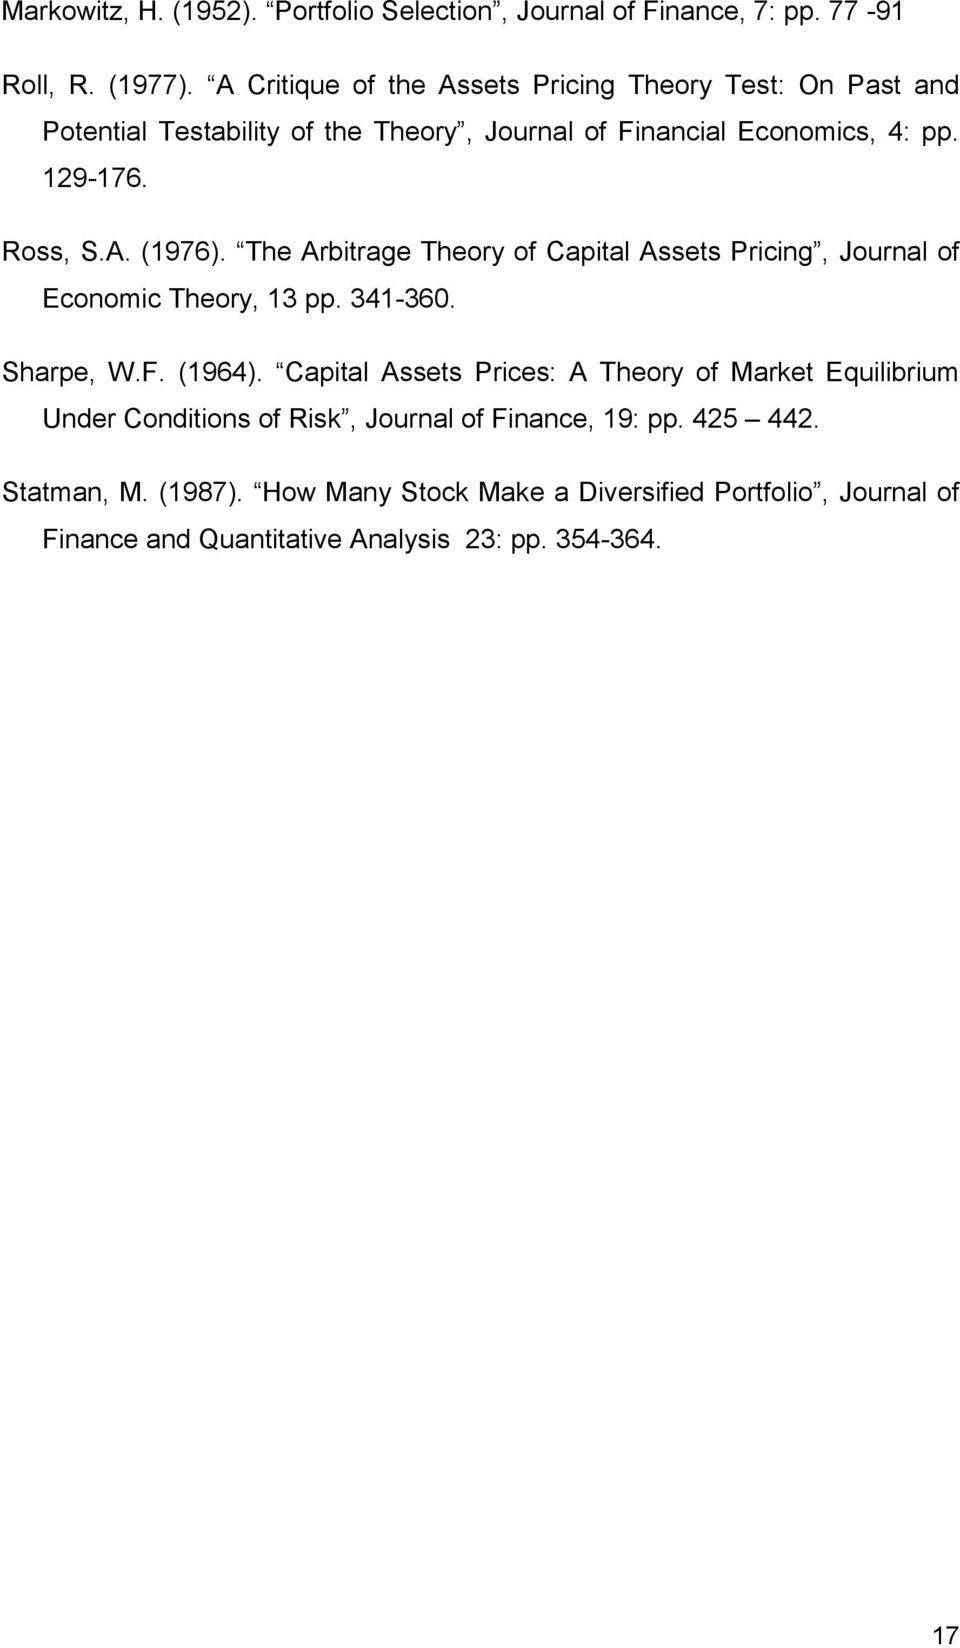 The Arbitrage Theory of Capital Assets Pricing, Journal of Economic Theory, 13 pp. 341-360. Sharpe, W.F. (1964).